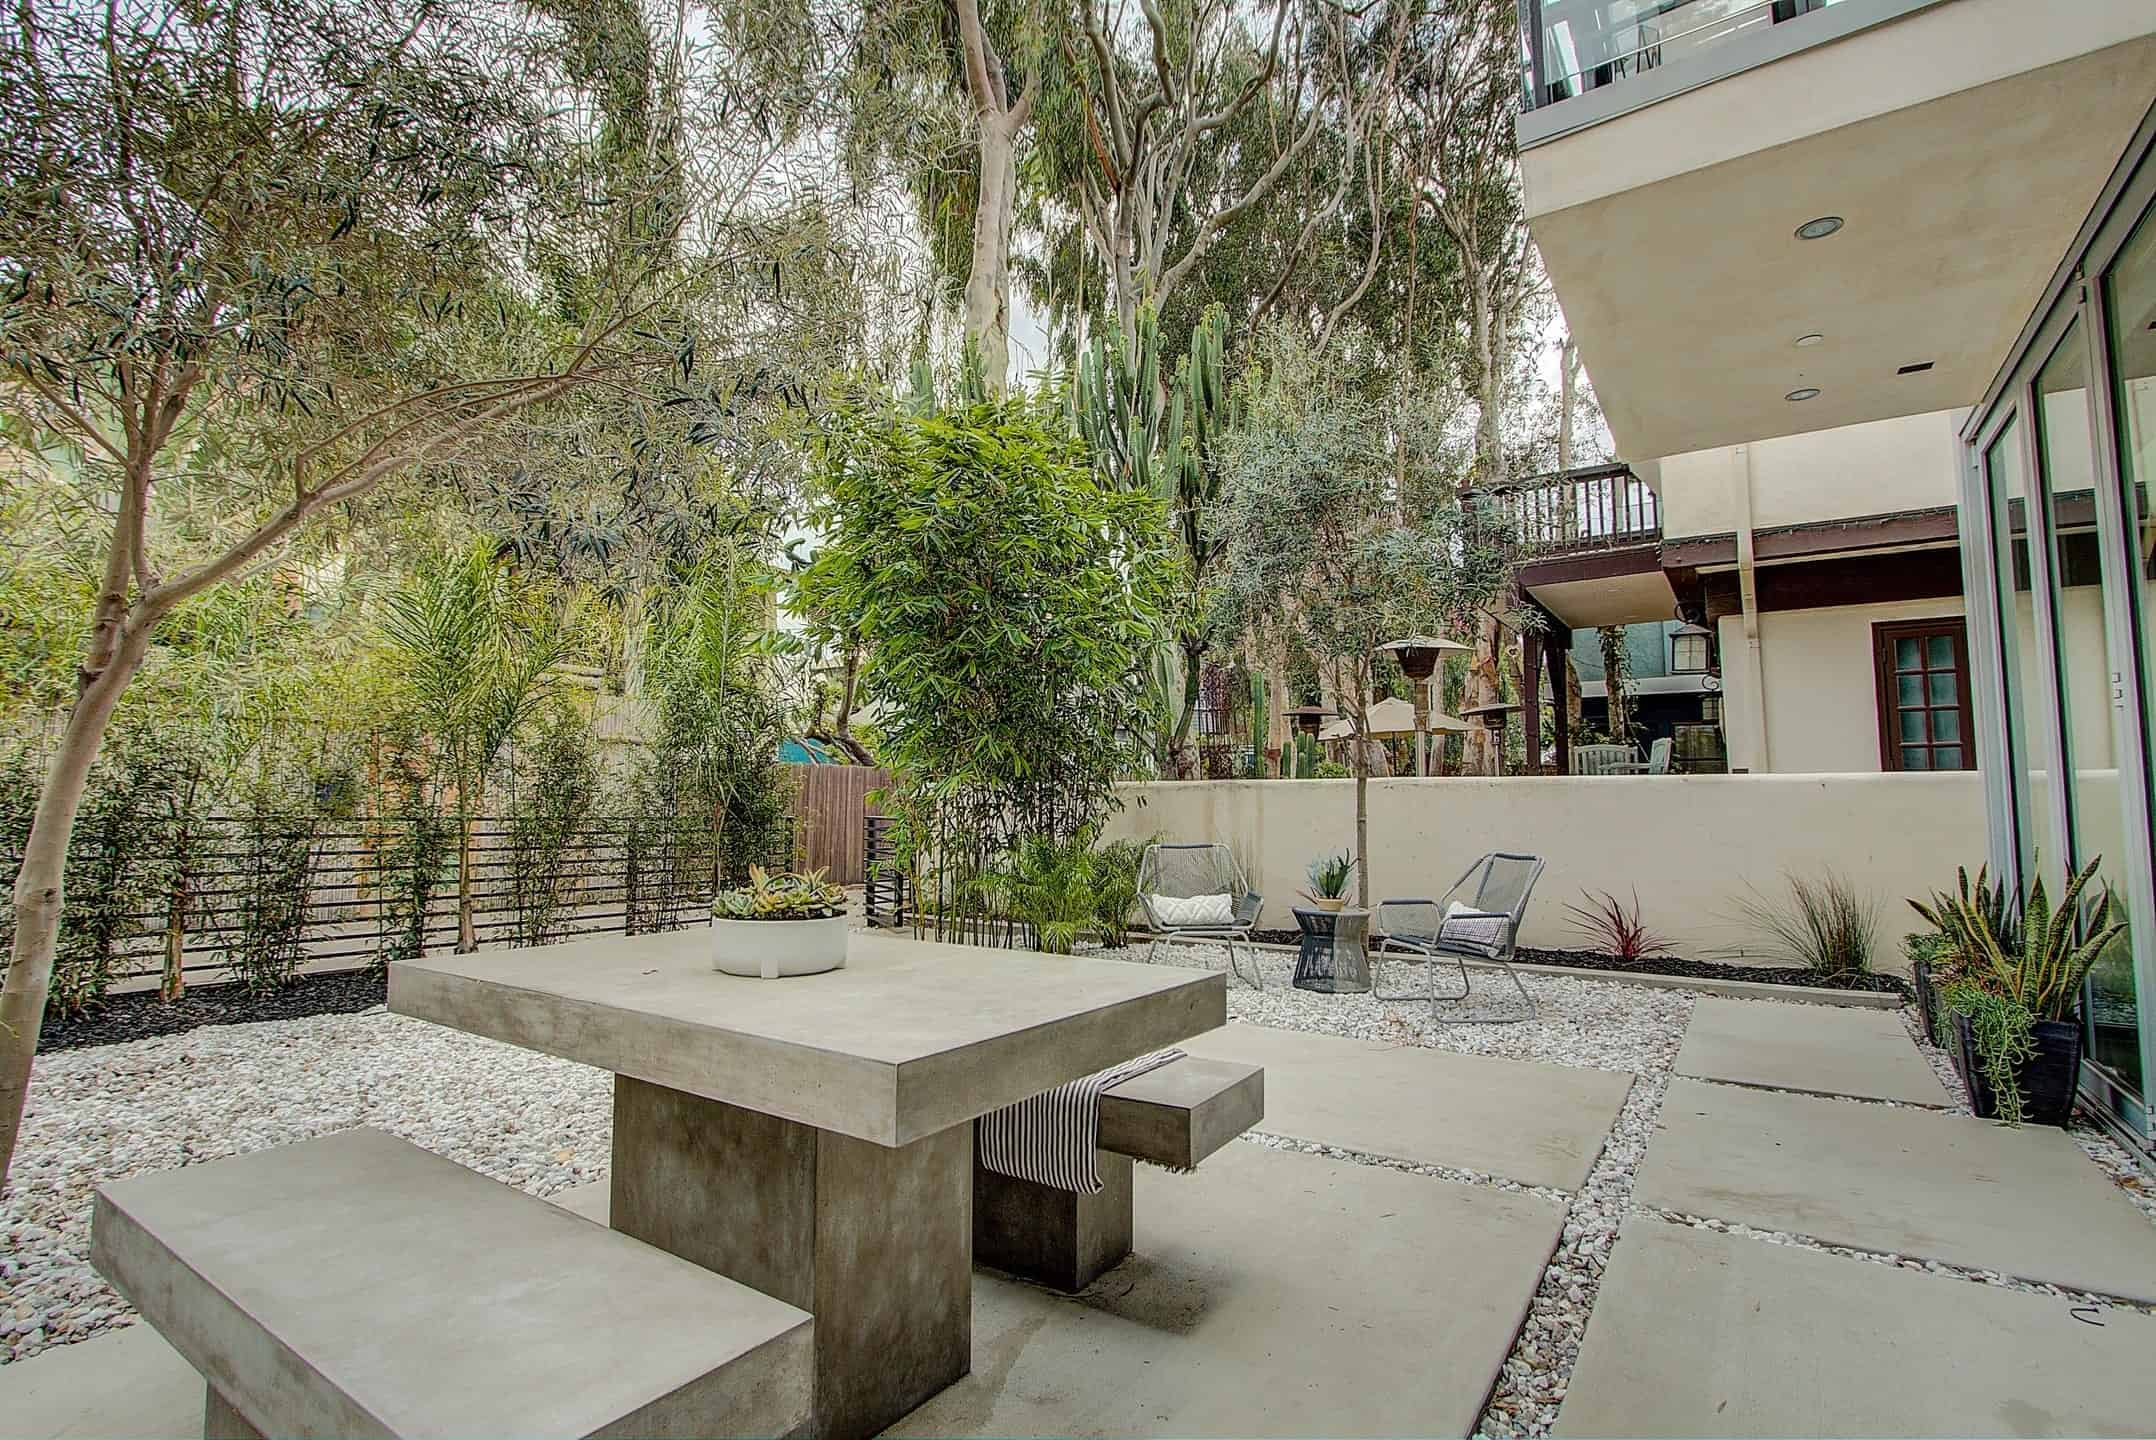 Large outdoor area with stone grounds and concrete walkway. There's a patio area and a dining area made of concrete table and seats. The space is surrounded by many plants and trees.